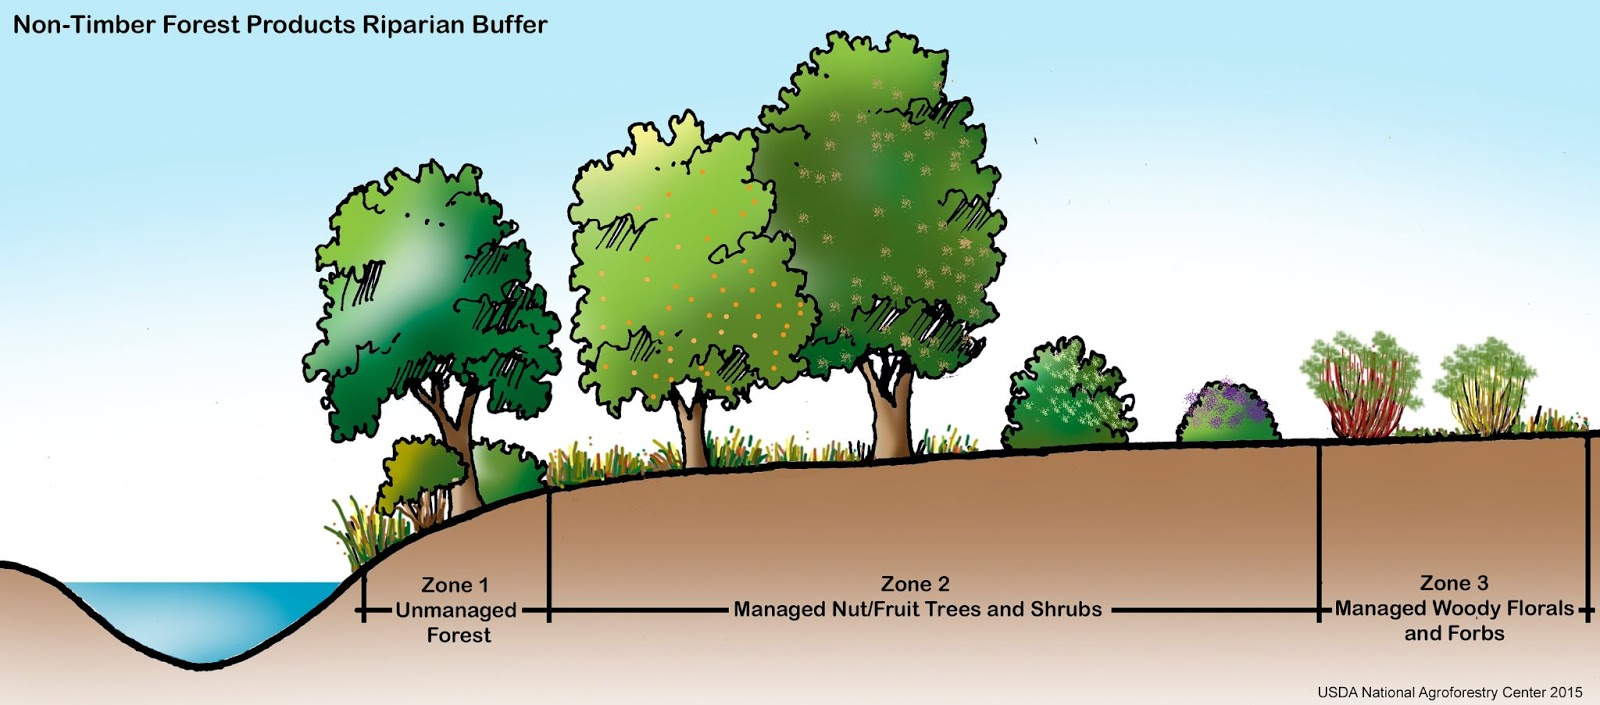 Riparian Buffer, Agroforestry